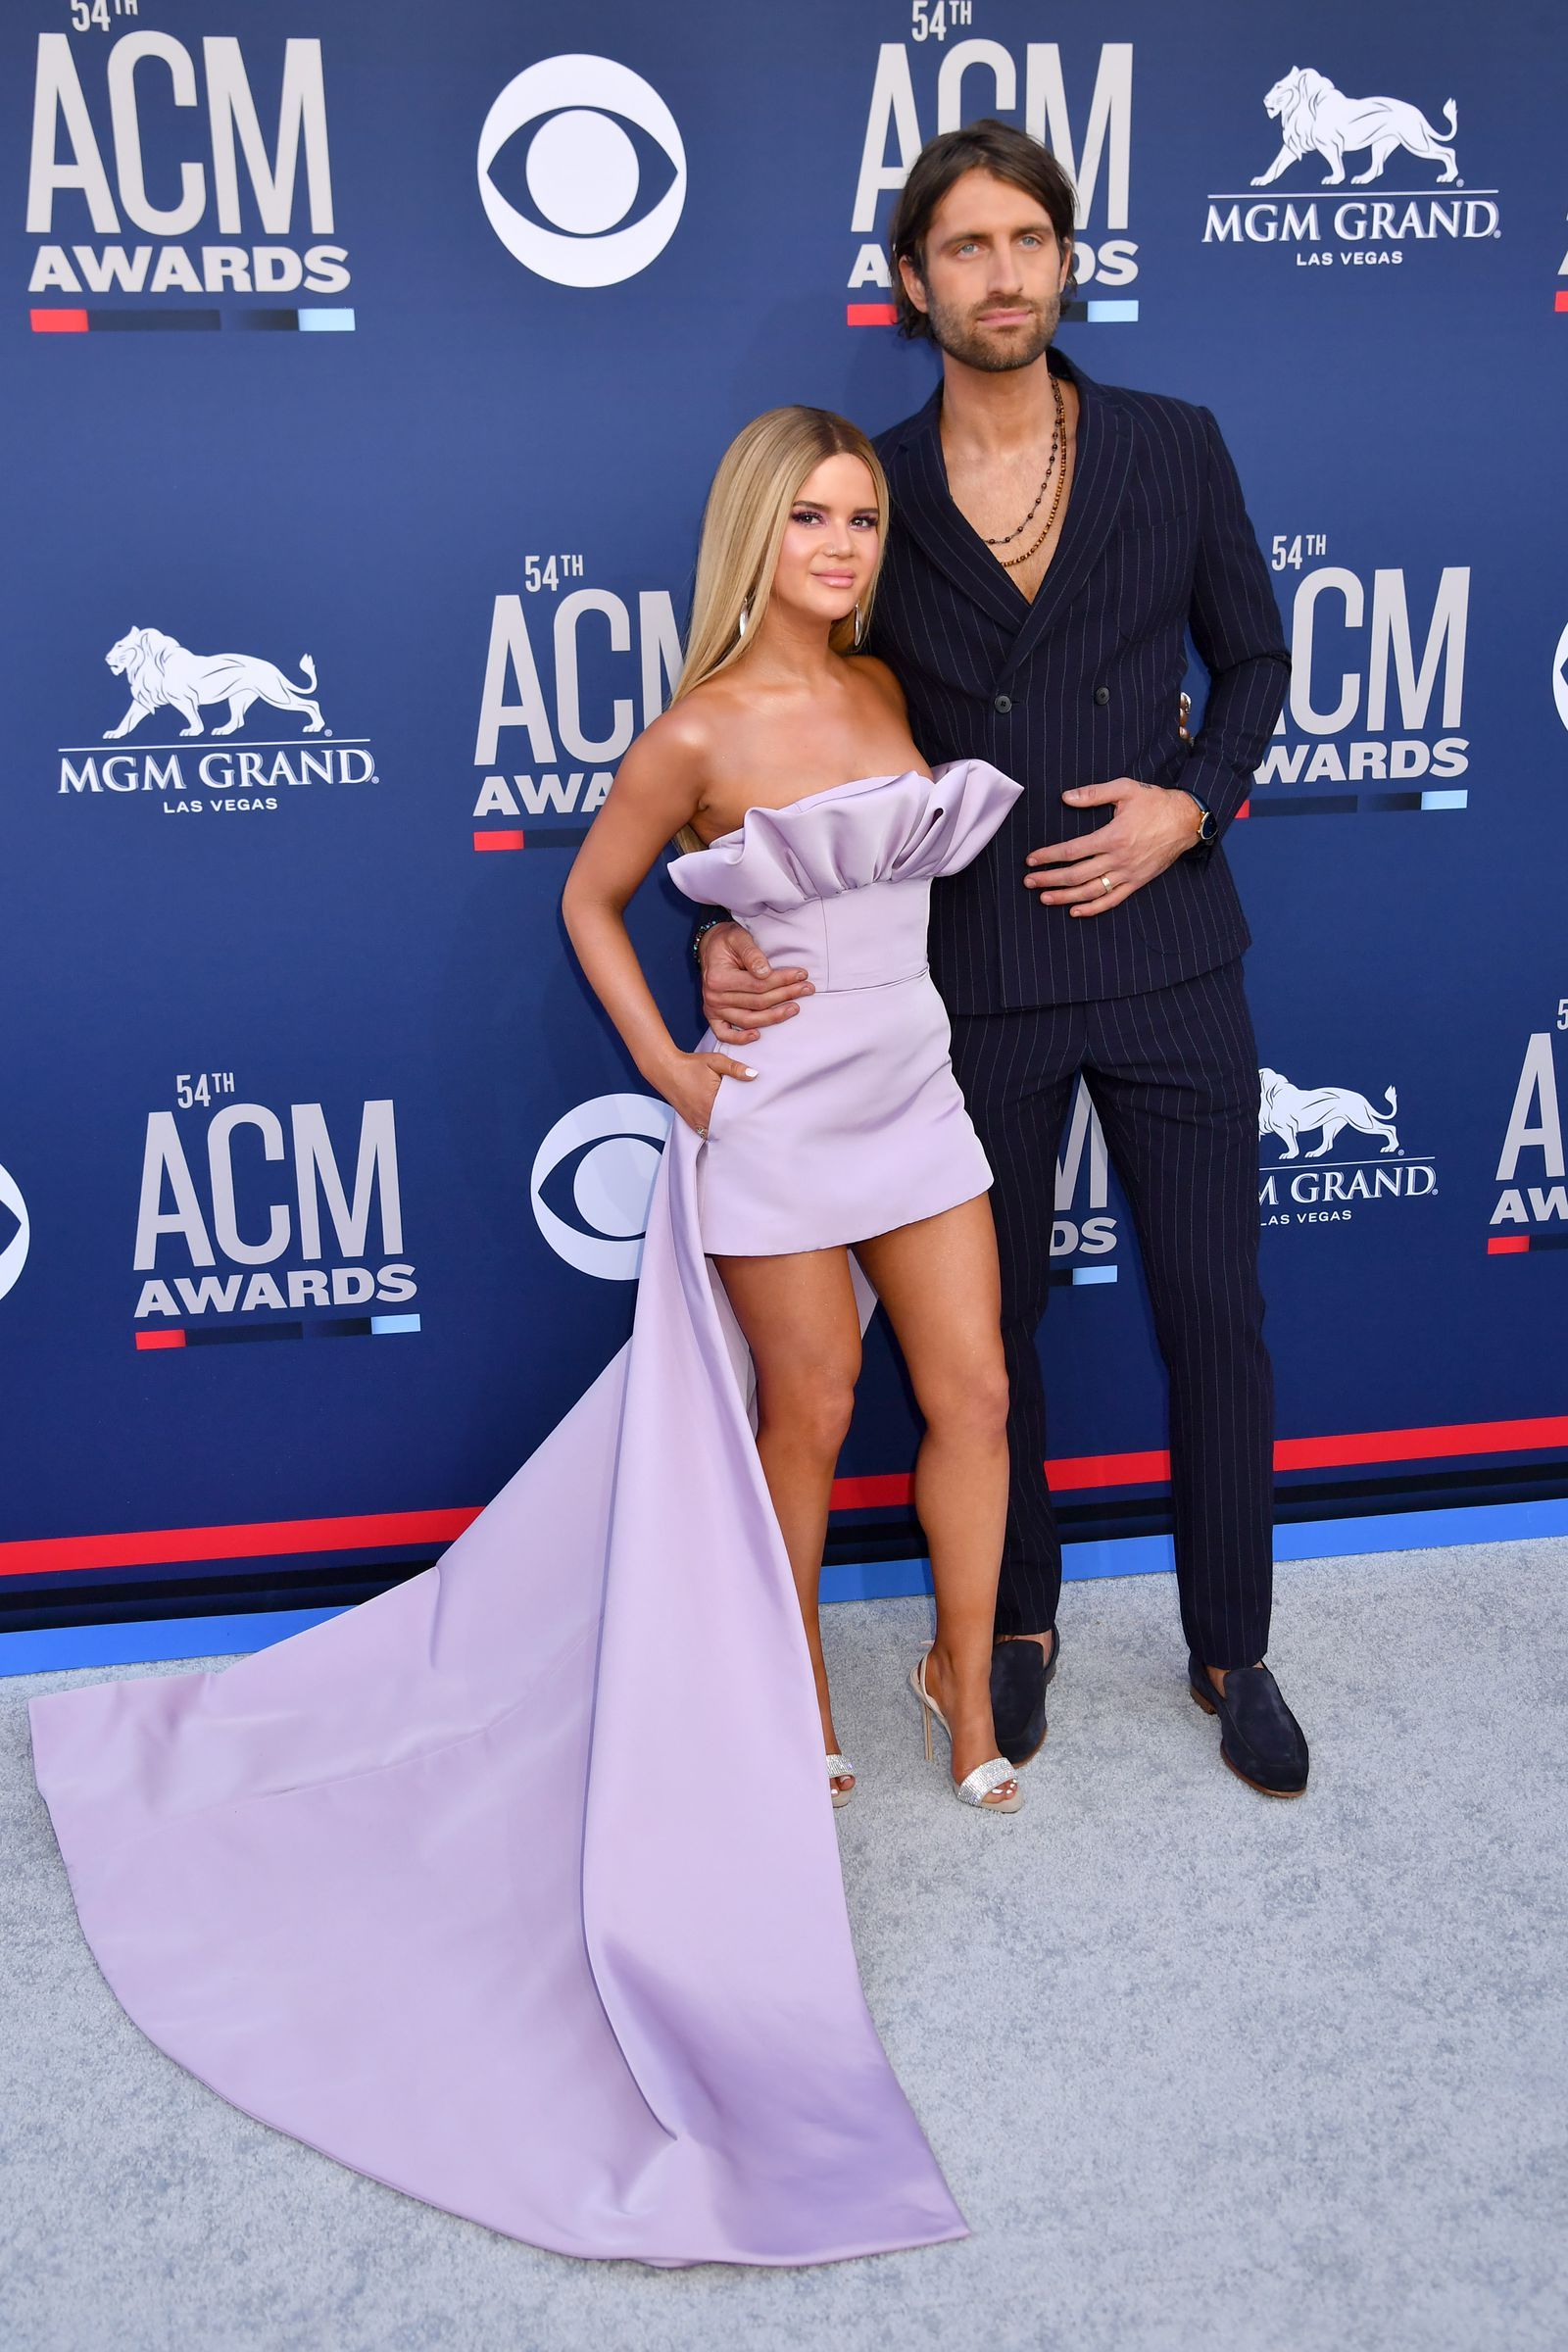 The Cutest Couples At The Acm Awards Red Carpet Maren Morris Cute Couples Nicole Kidman Keith Urban